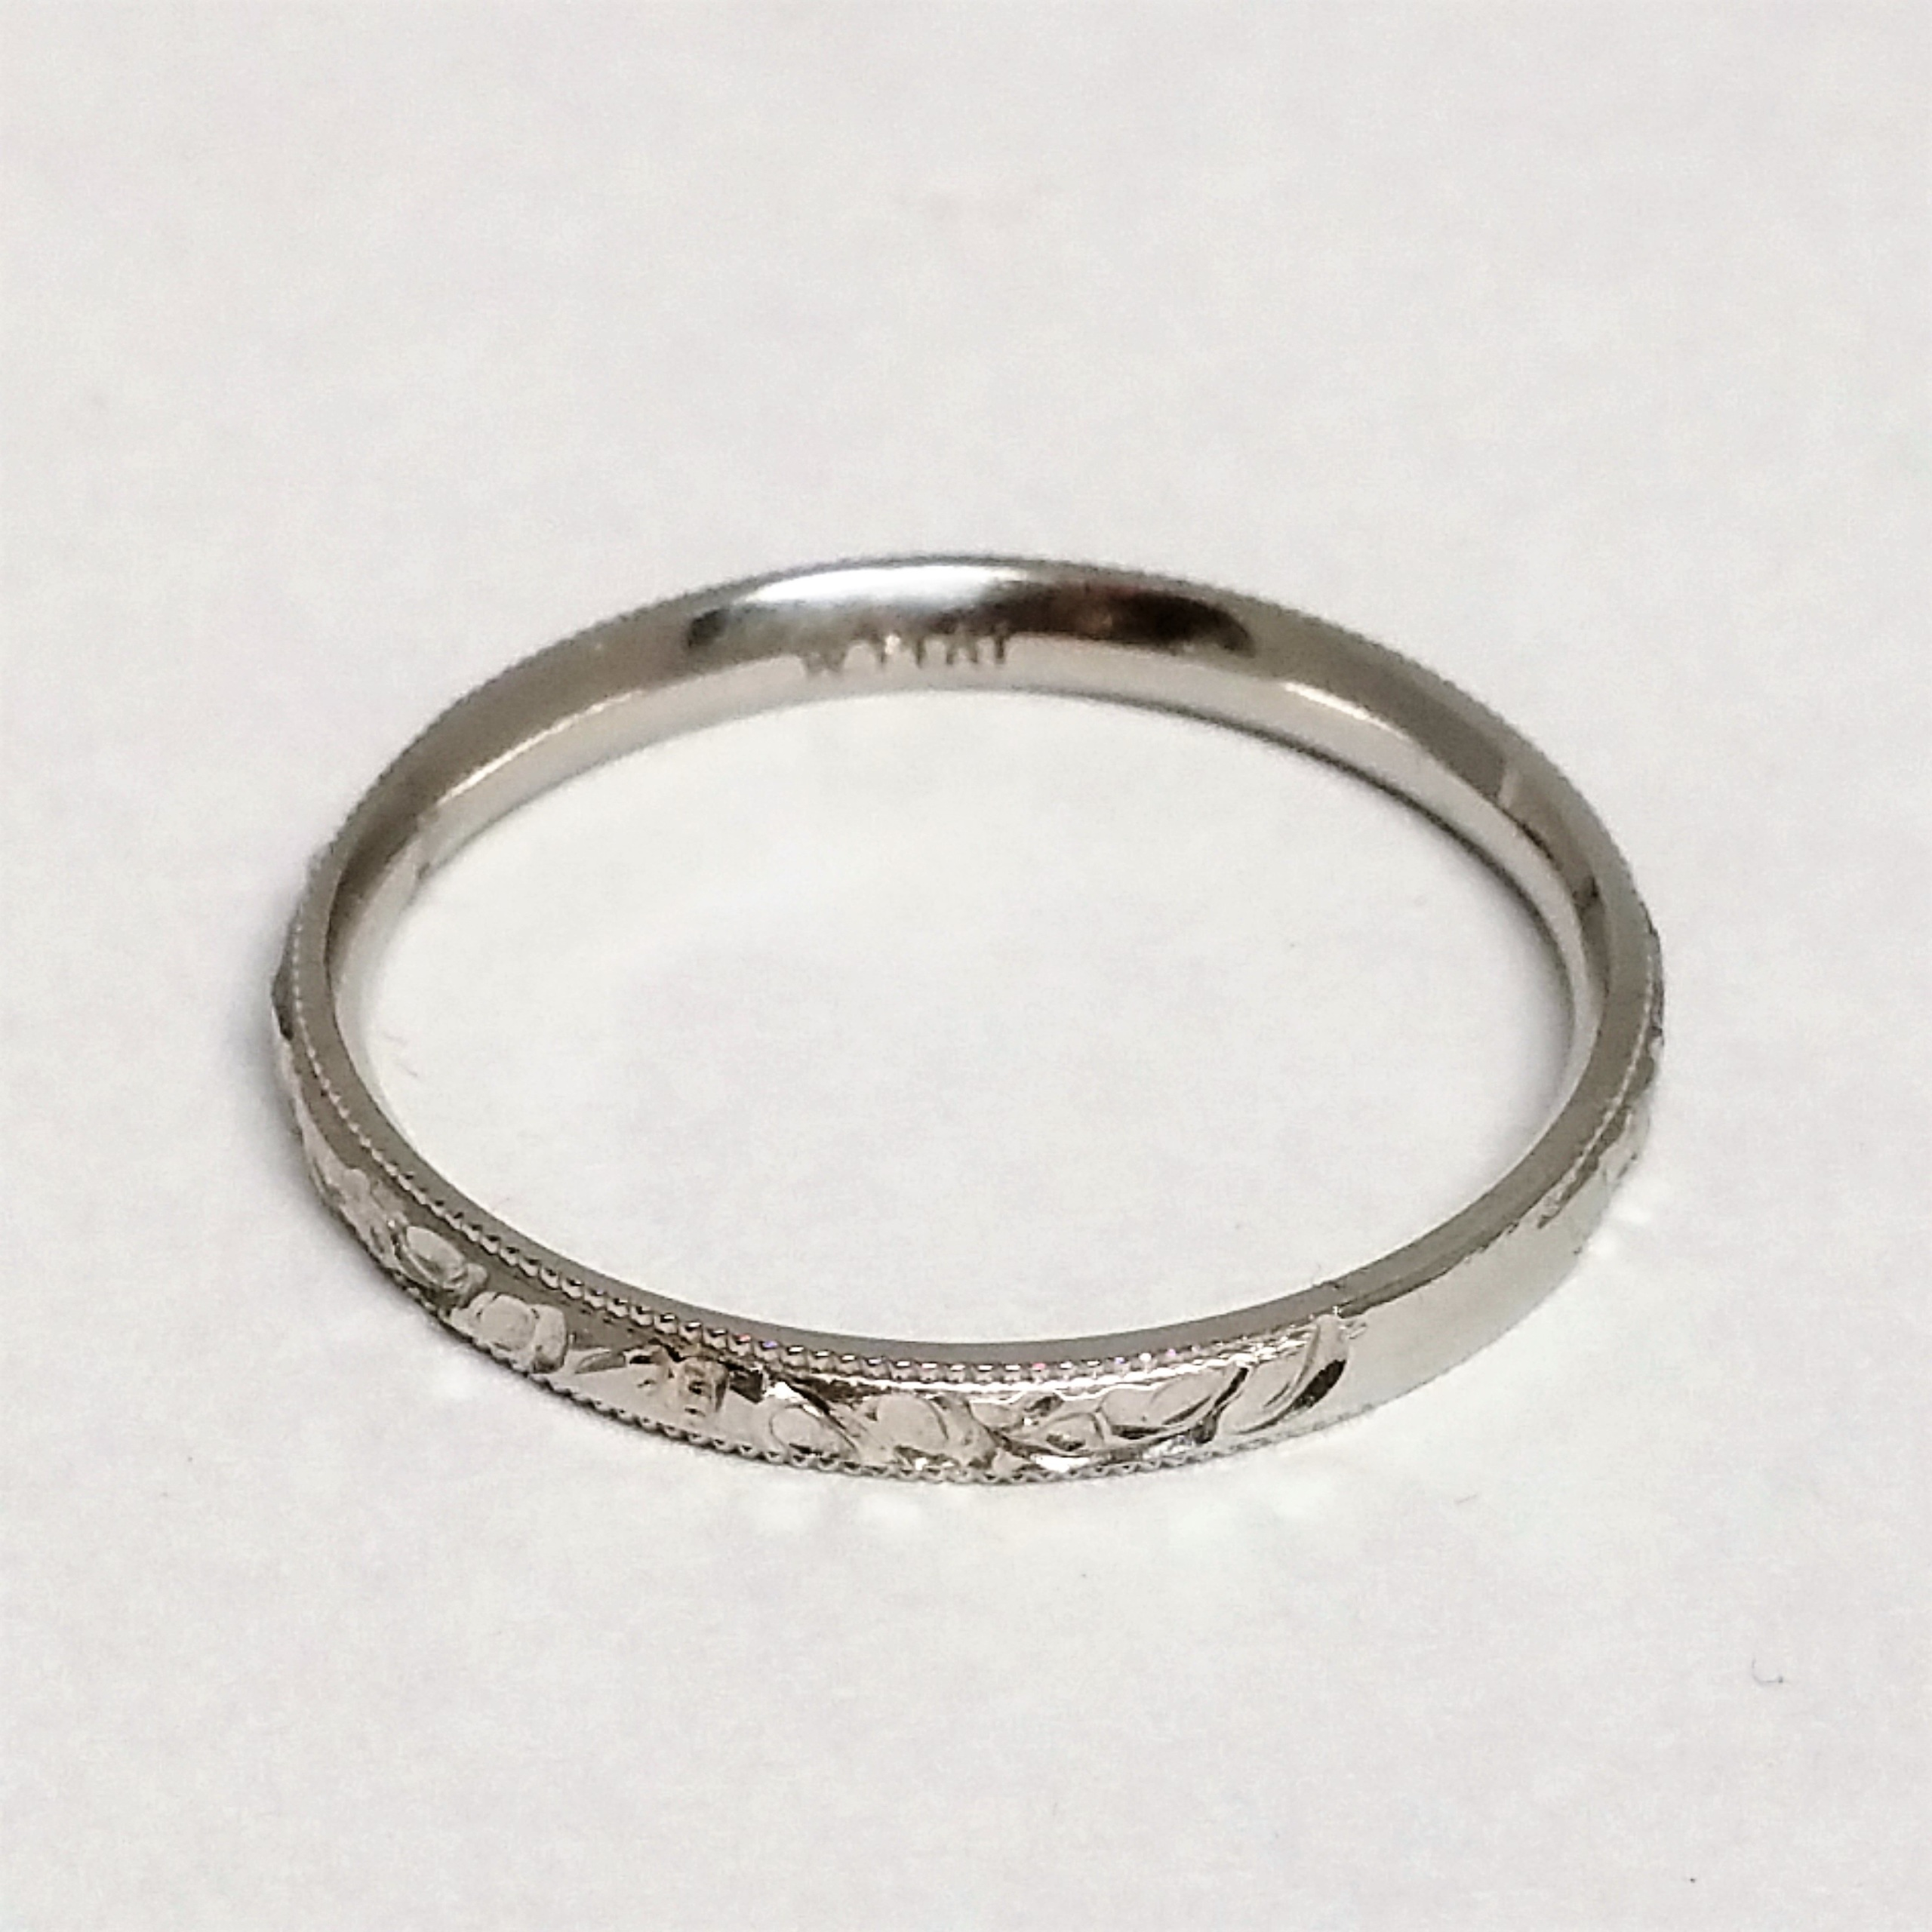 wedding platinum bands page e with thick thinthick size ring topic and band closed thin help